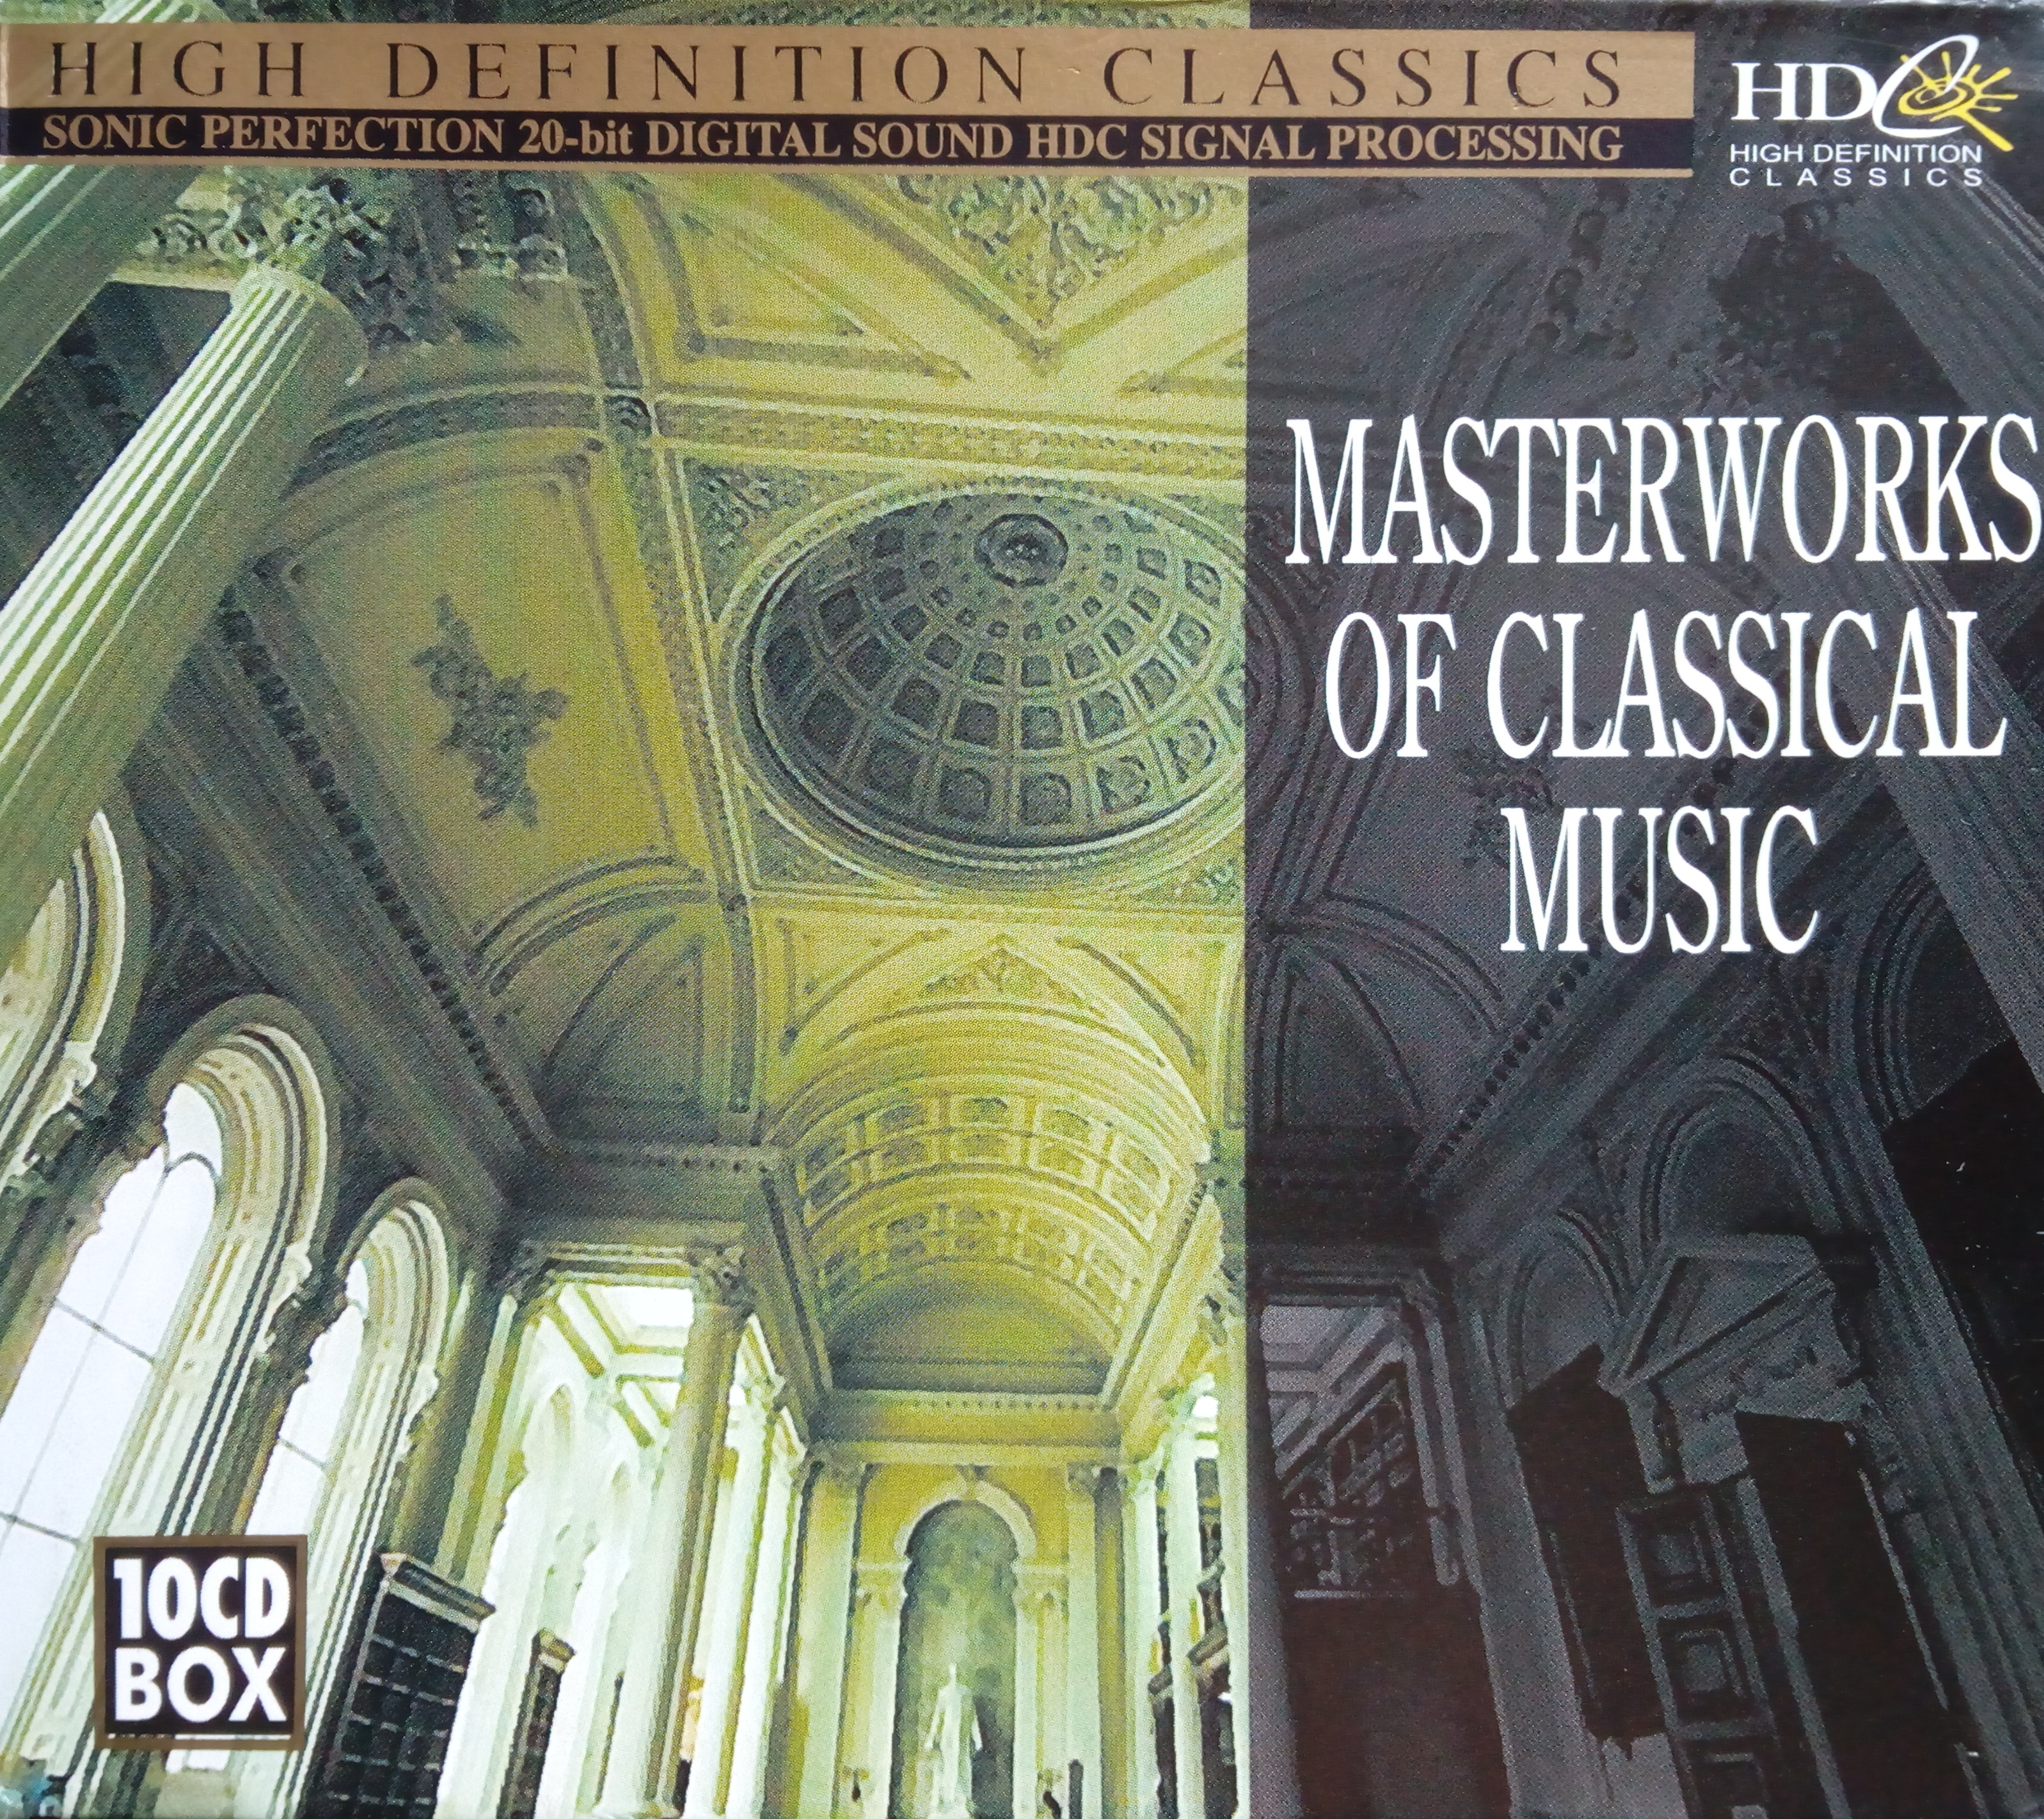 High definition classic - Masterworks of classical music 10CD